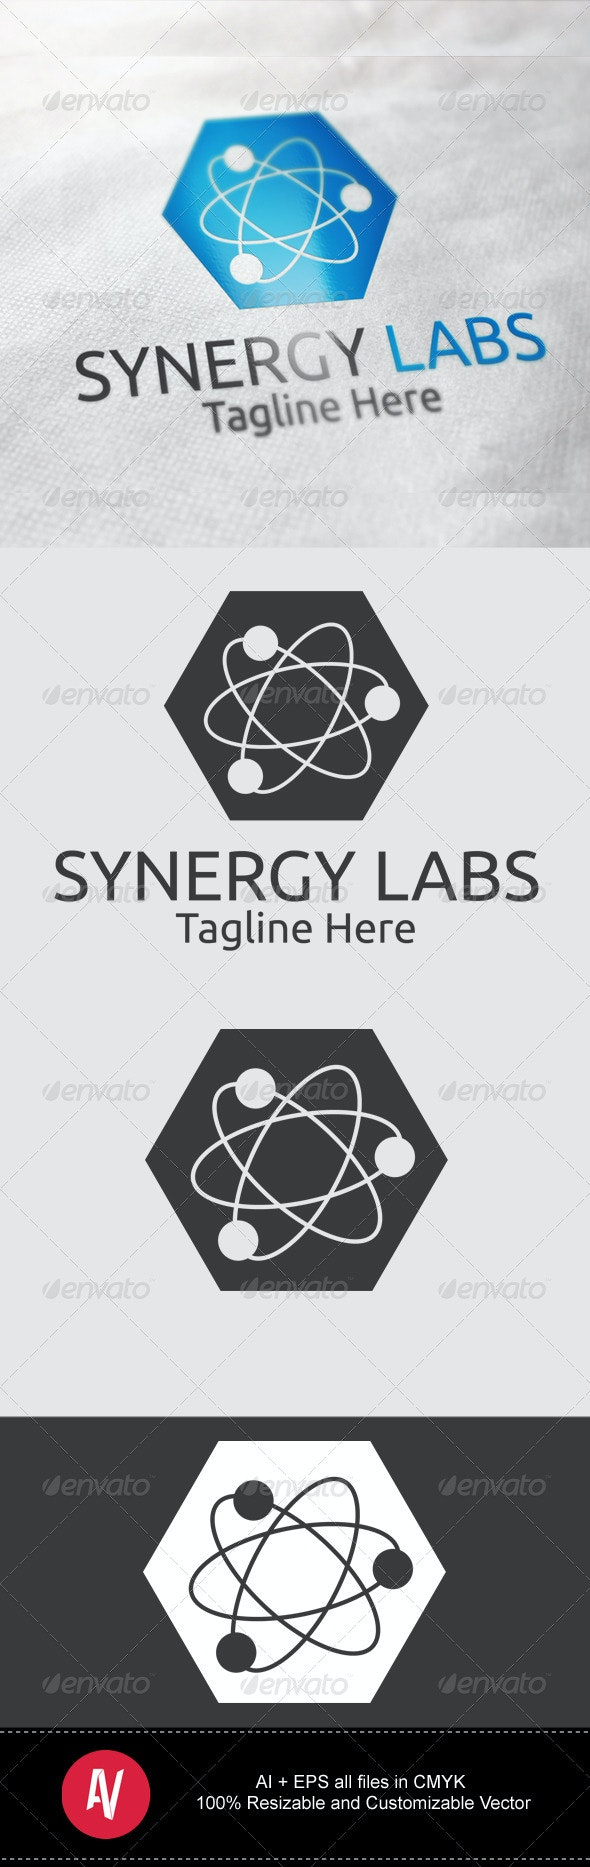 Synergy Labs Logo - Objects Logo Templates